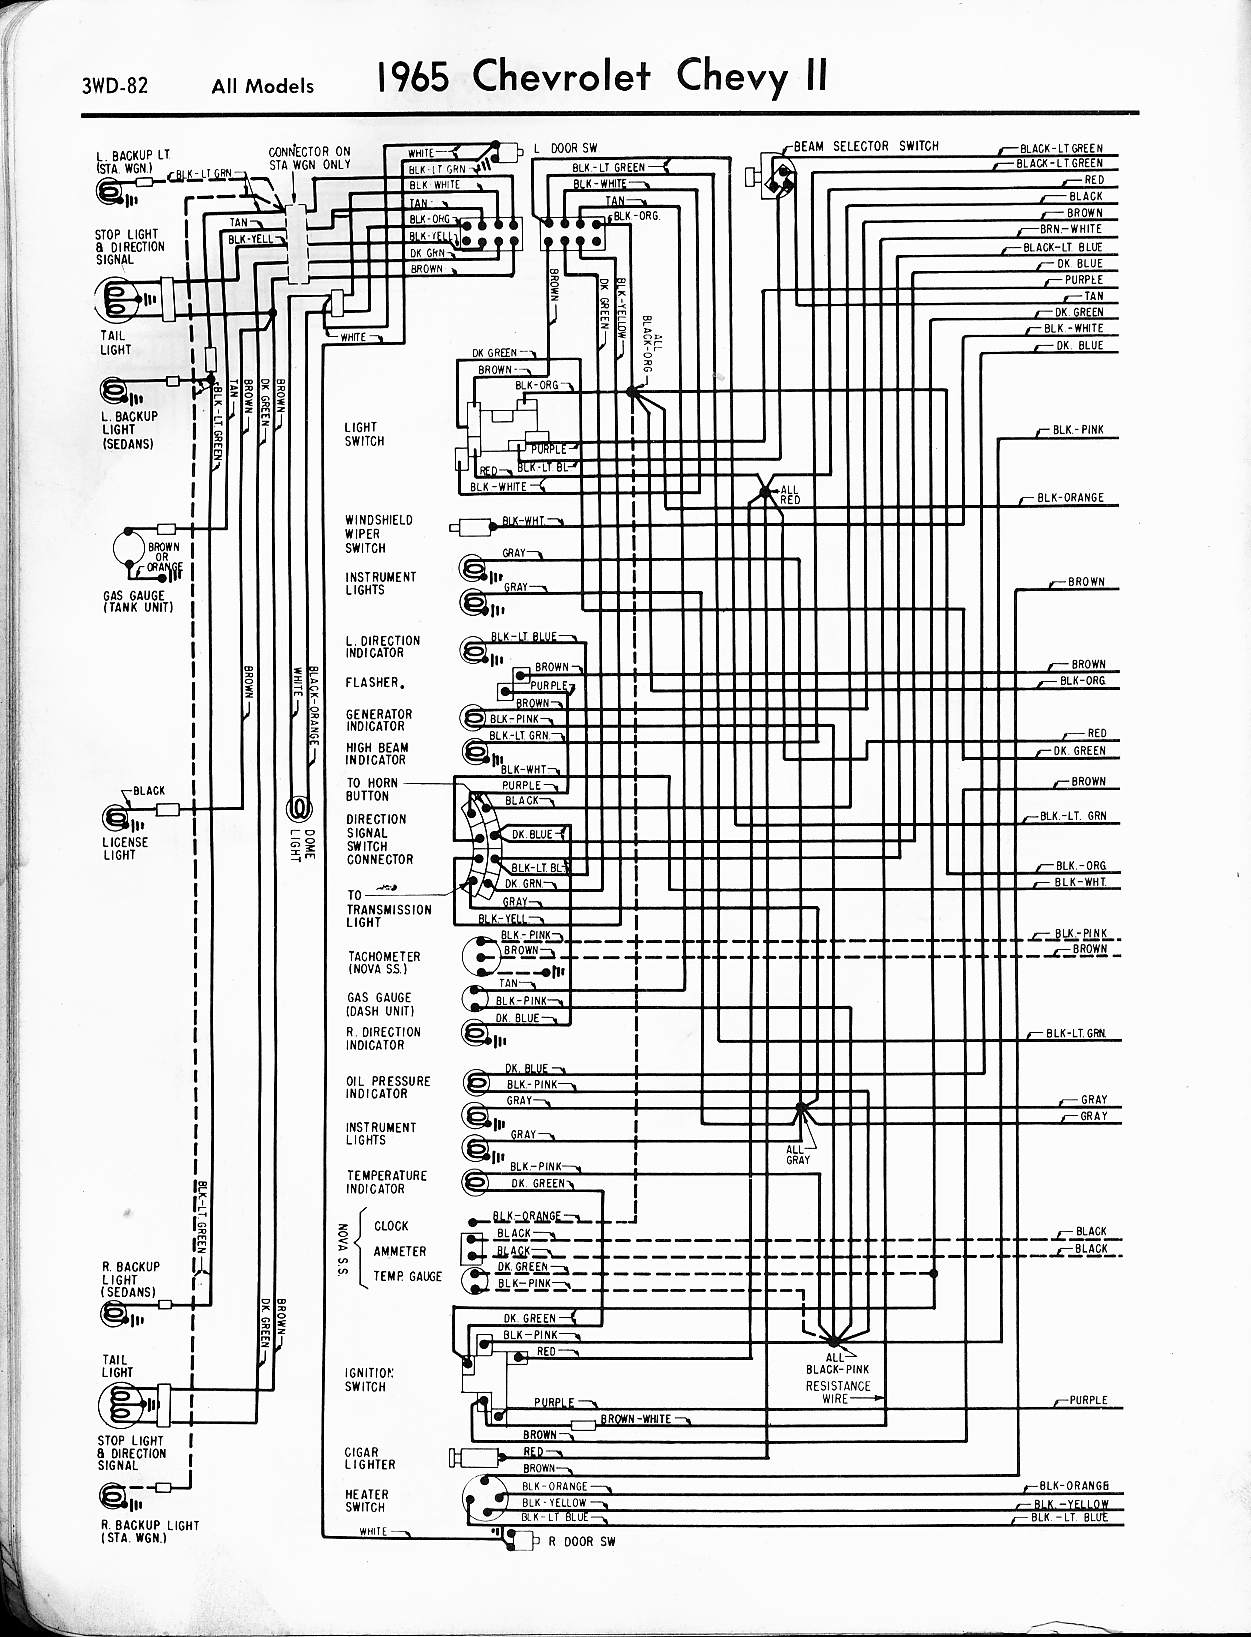 MWireChev65_3WD 082 chevy diagrams chevrolet wiring diagram at mifinder.co